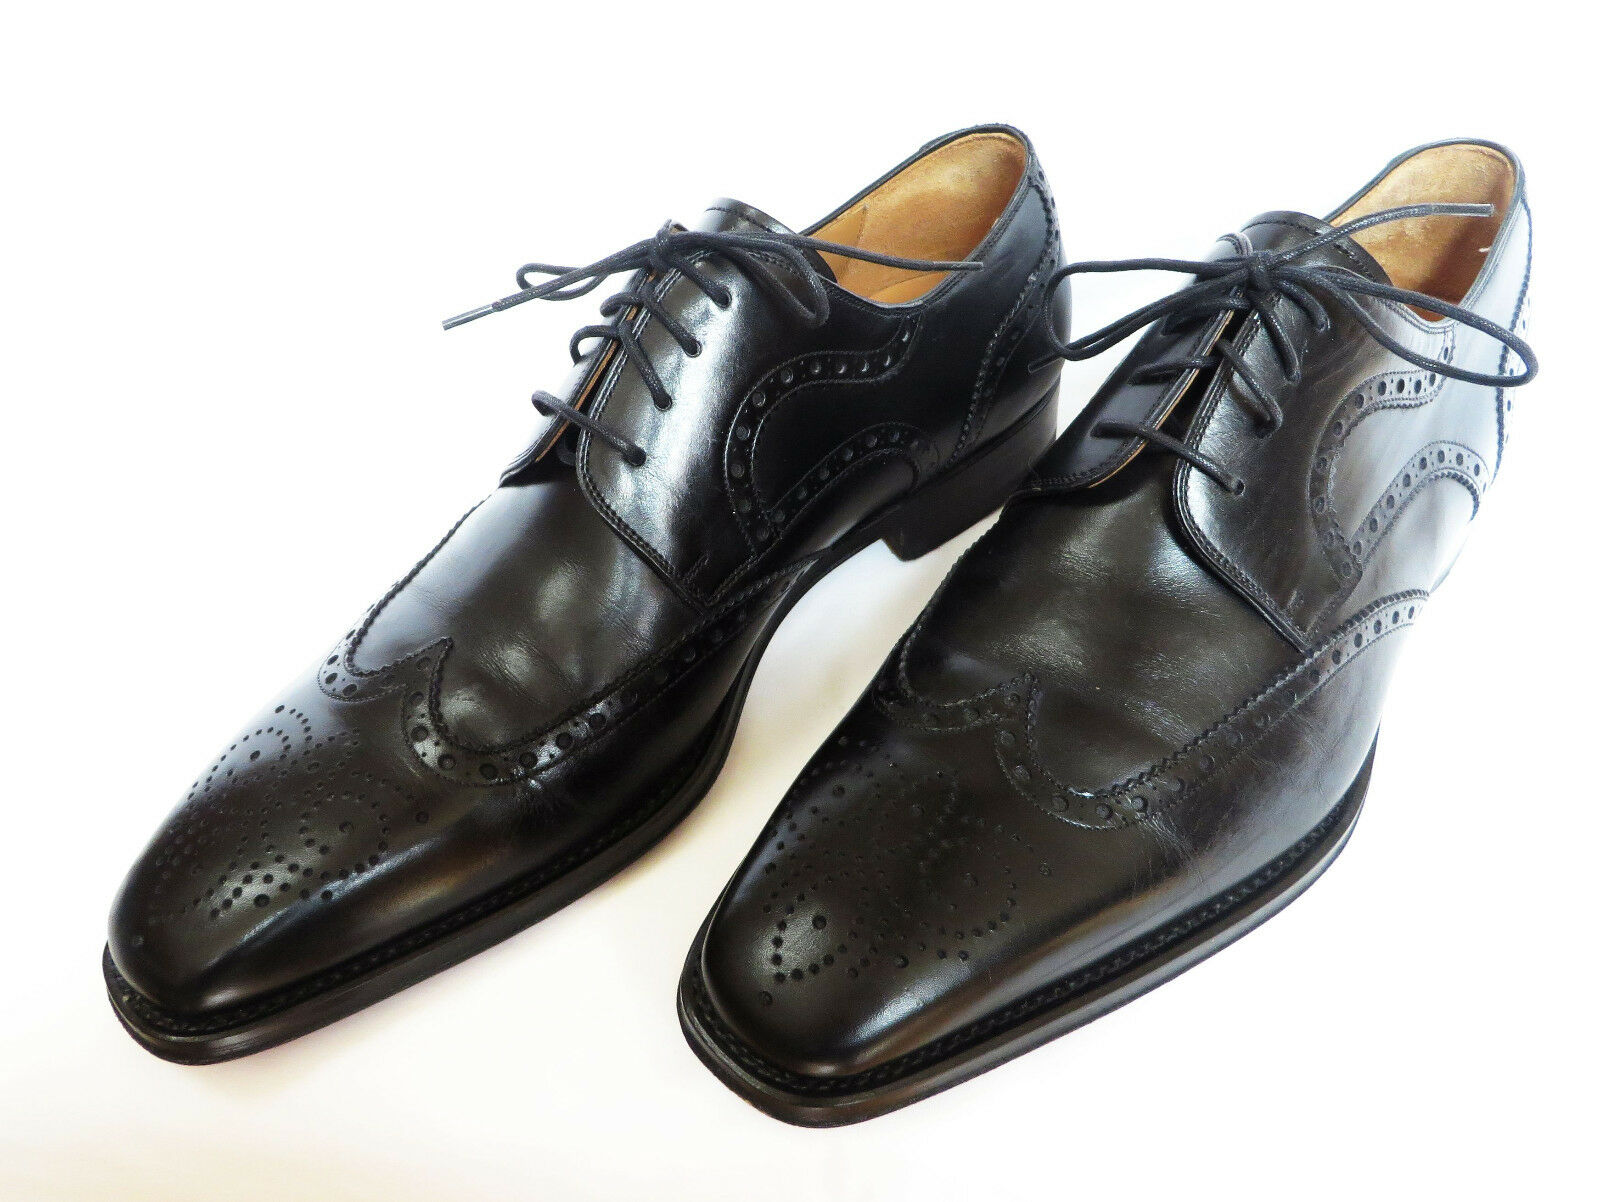 scegli il tuo preferito MAGNANNI Sergio Spain Uomo nero Wing Tip Leather Derby Oxfords Oxfords Oxfords scarpe 9.5 M  ti aspetto